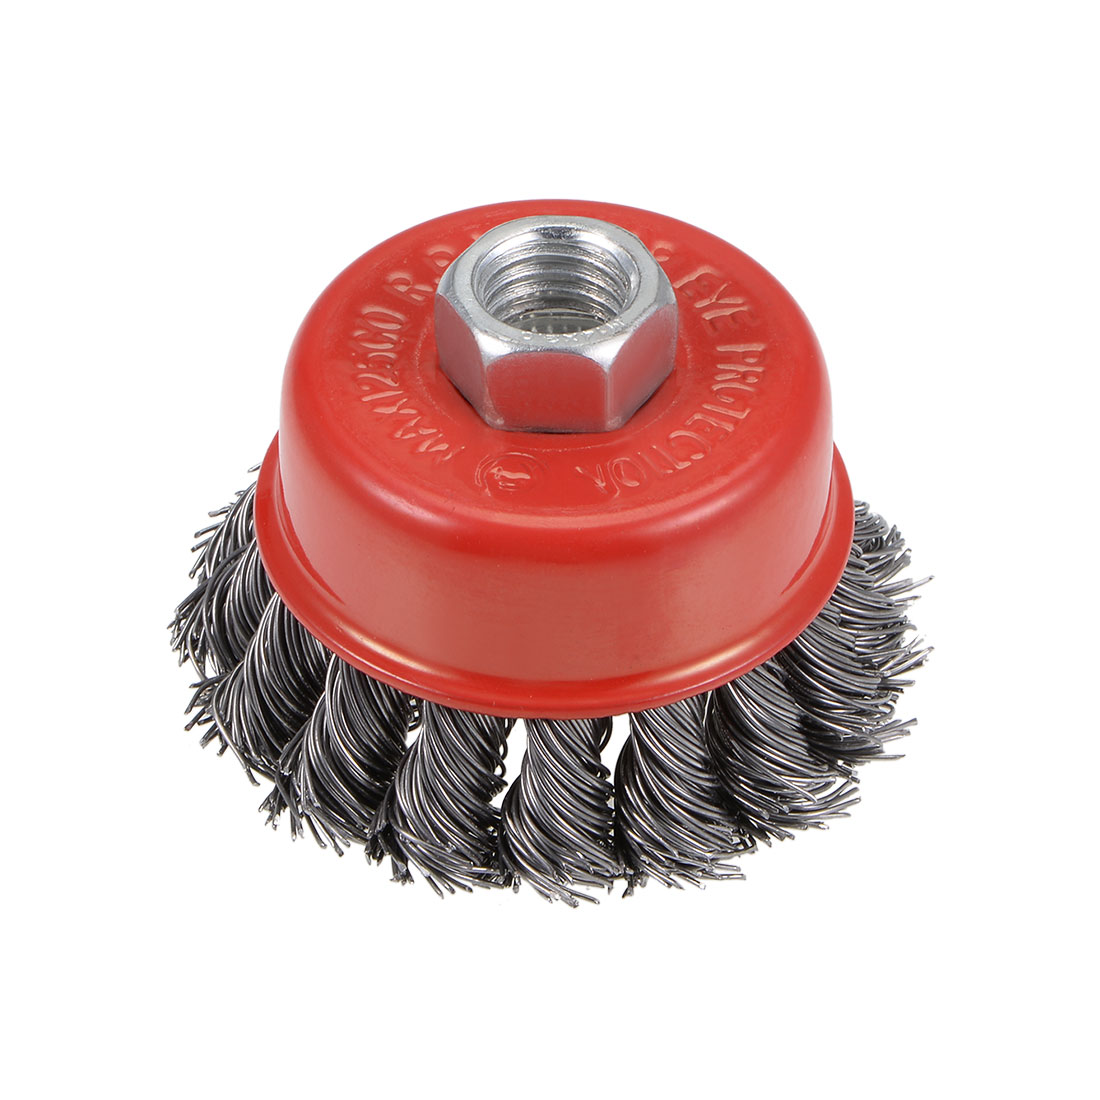 2-1/2-Inch Wire Cup Brush Twist Knotted Crimped Steel with M14 Threaded Hole